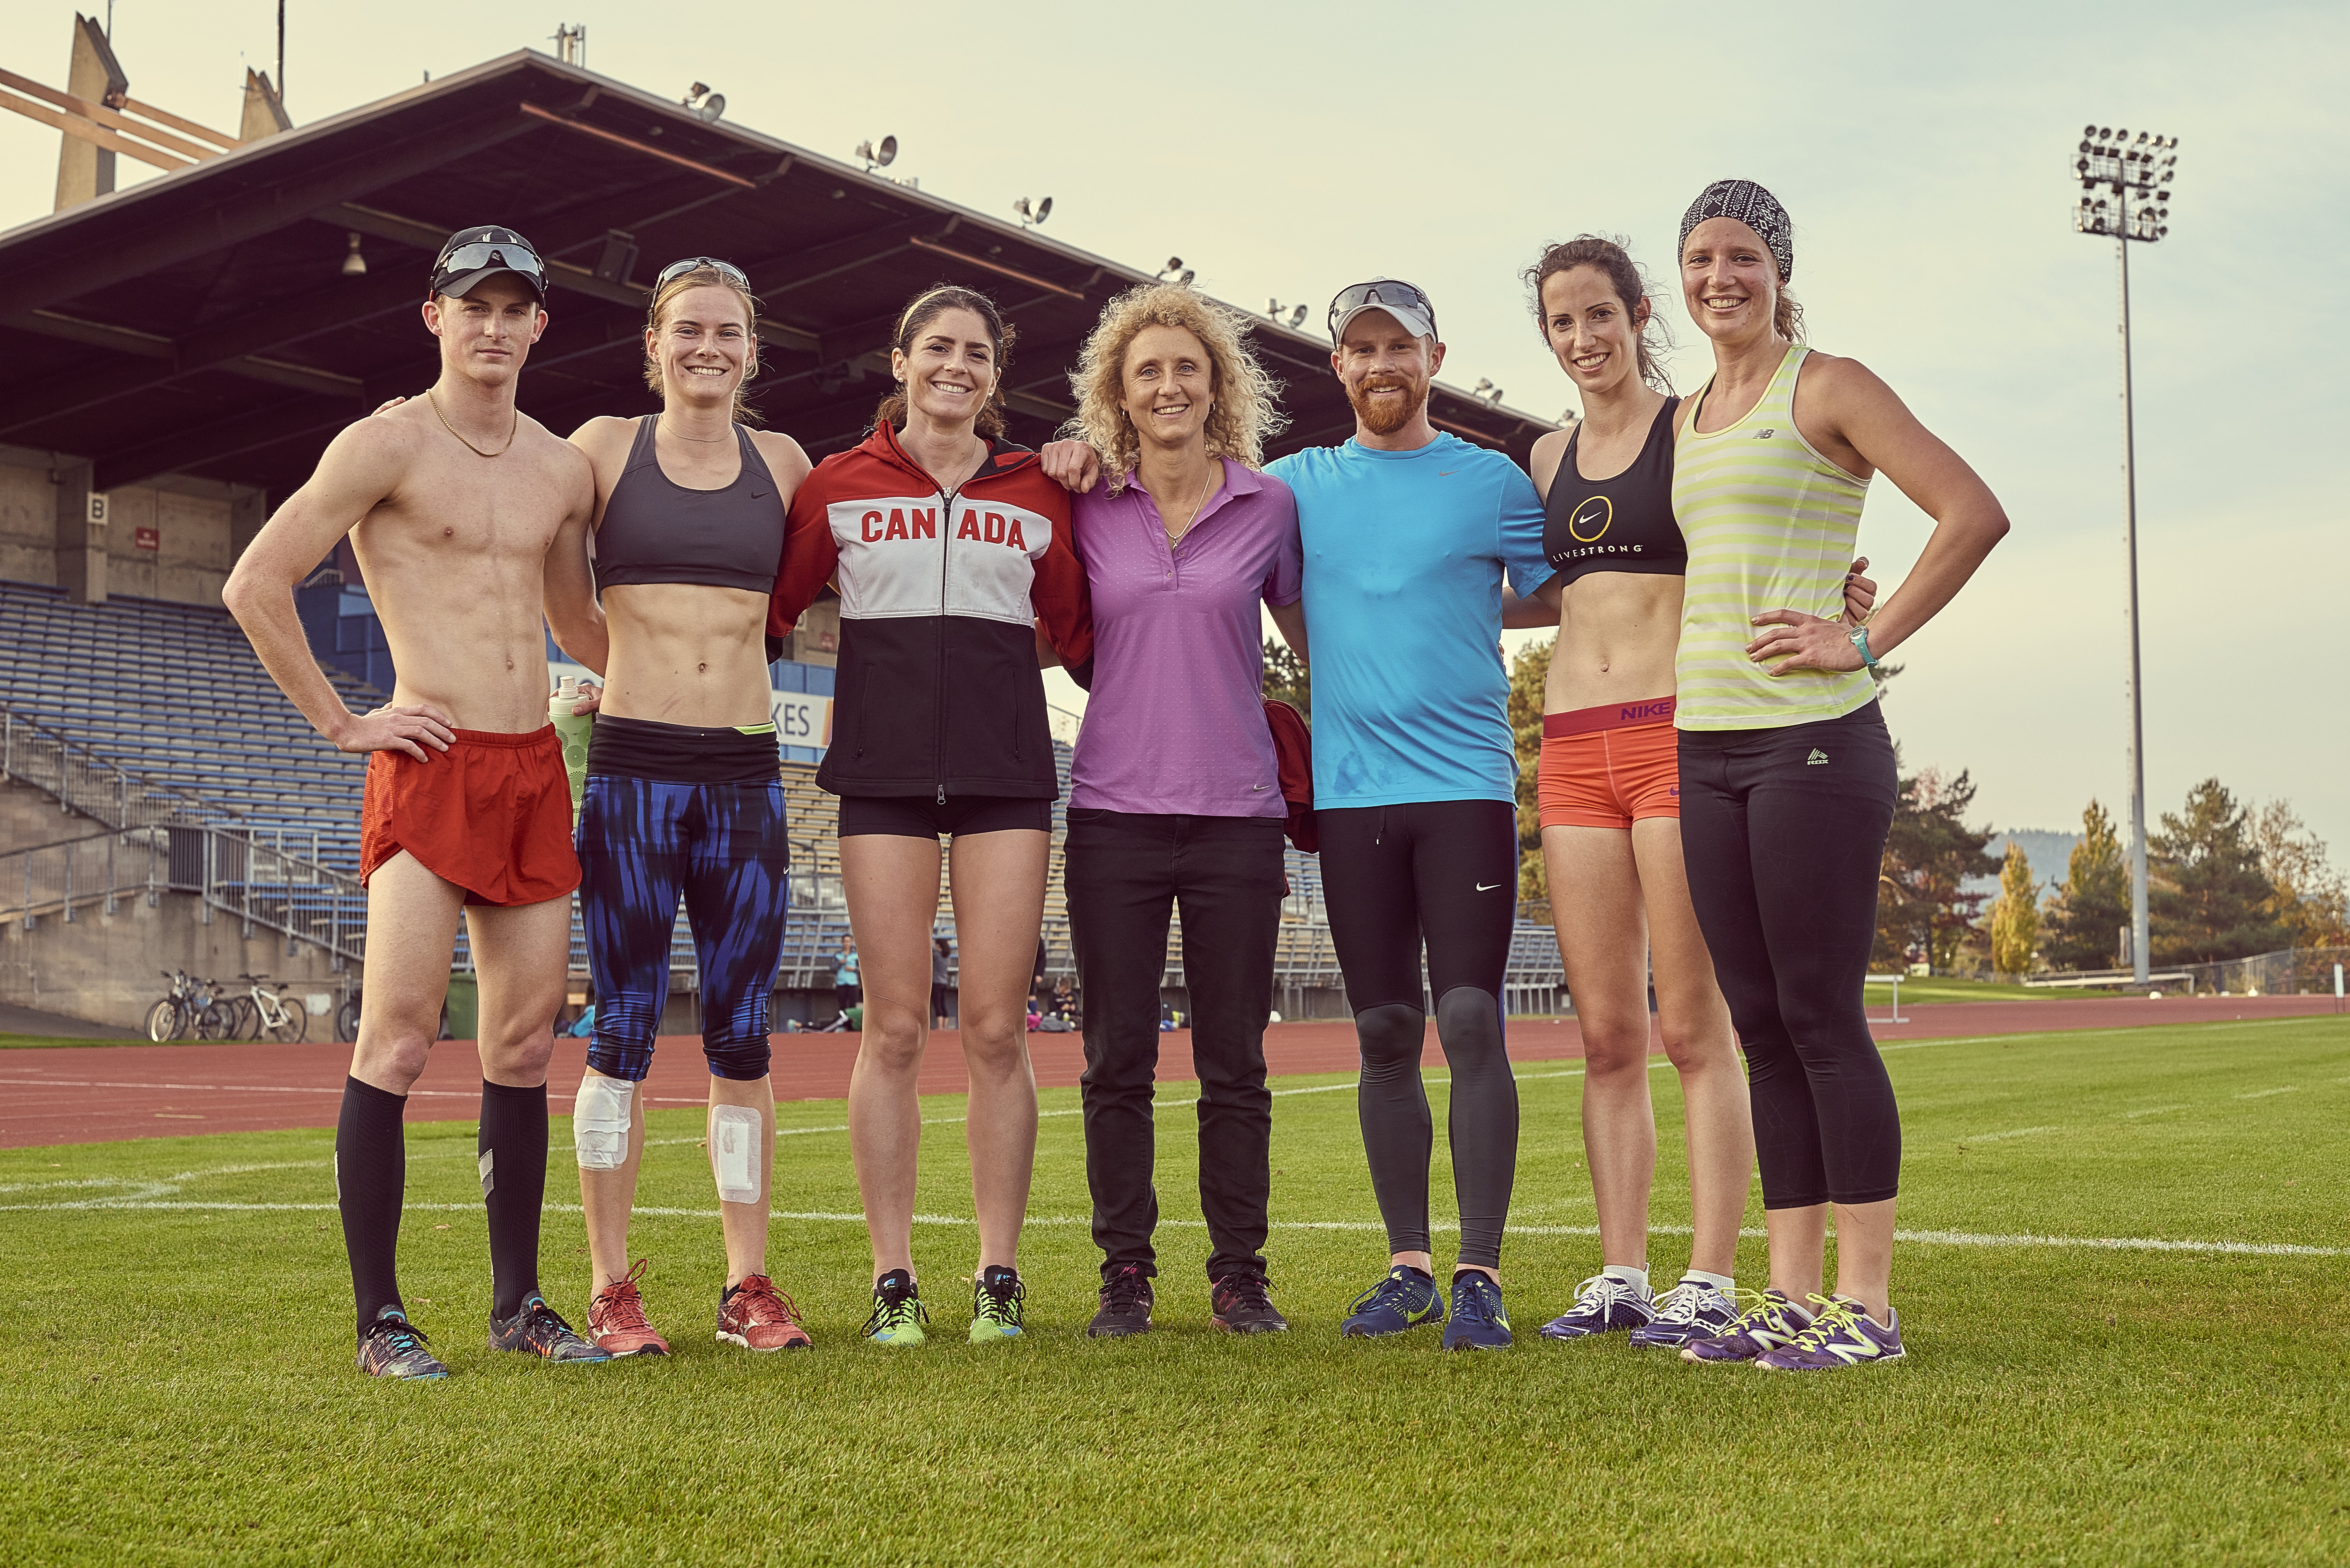 Athletics Canada Western Hub